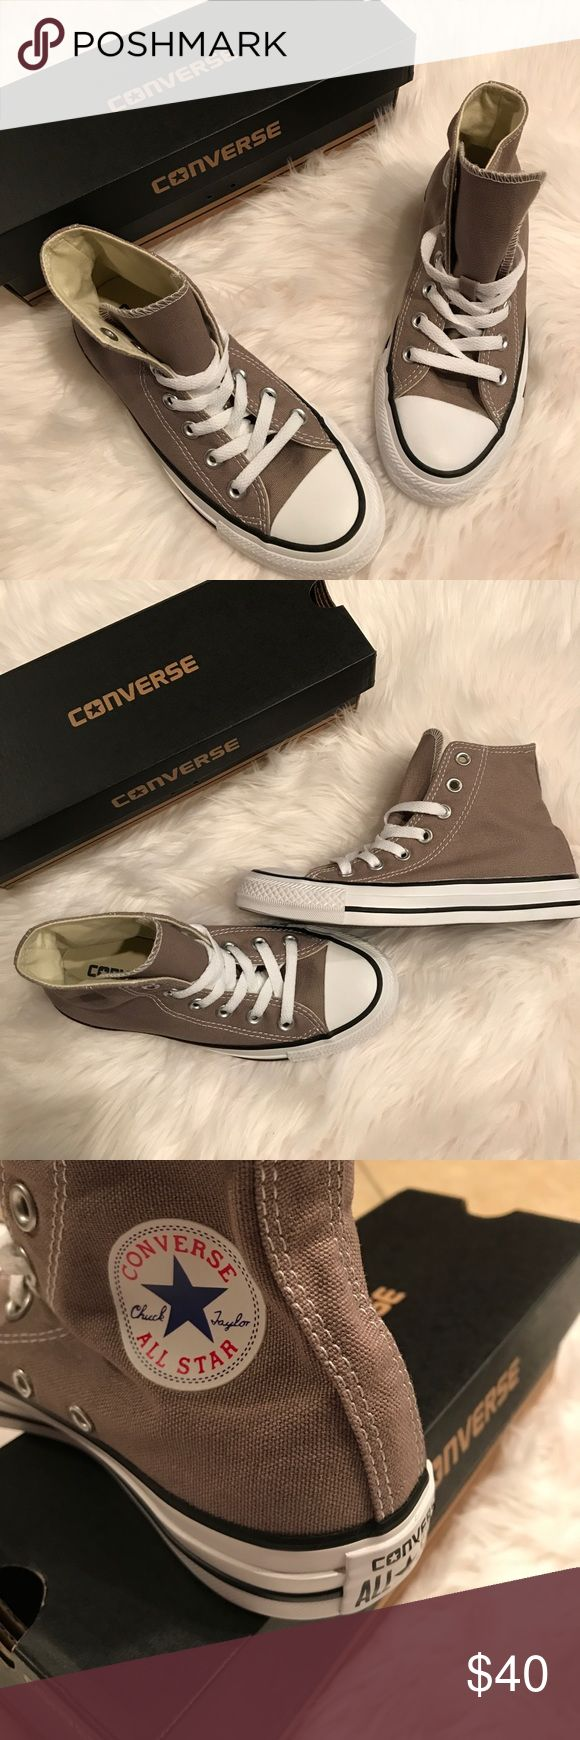 Converse All Star Converse All Star in full box- womens 5, Men's 3. The color is Malt, they are a neutral tan shade & would adorable with jeans! Converse Shoes Sneakers